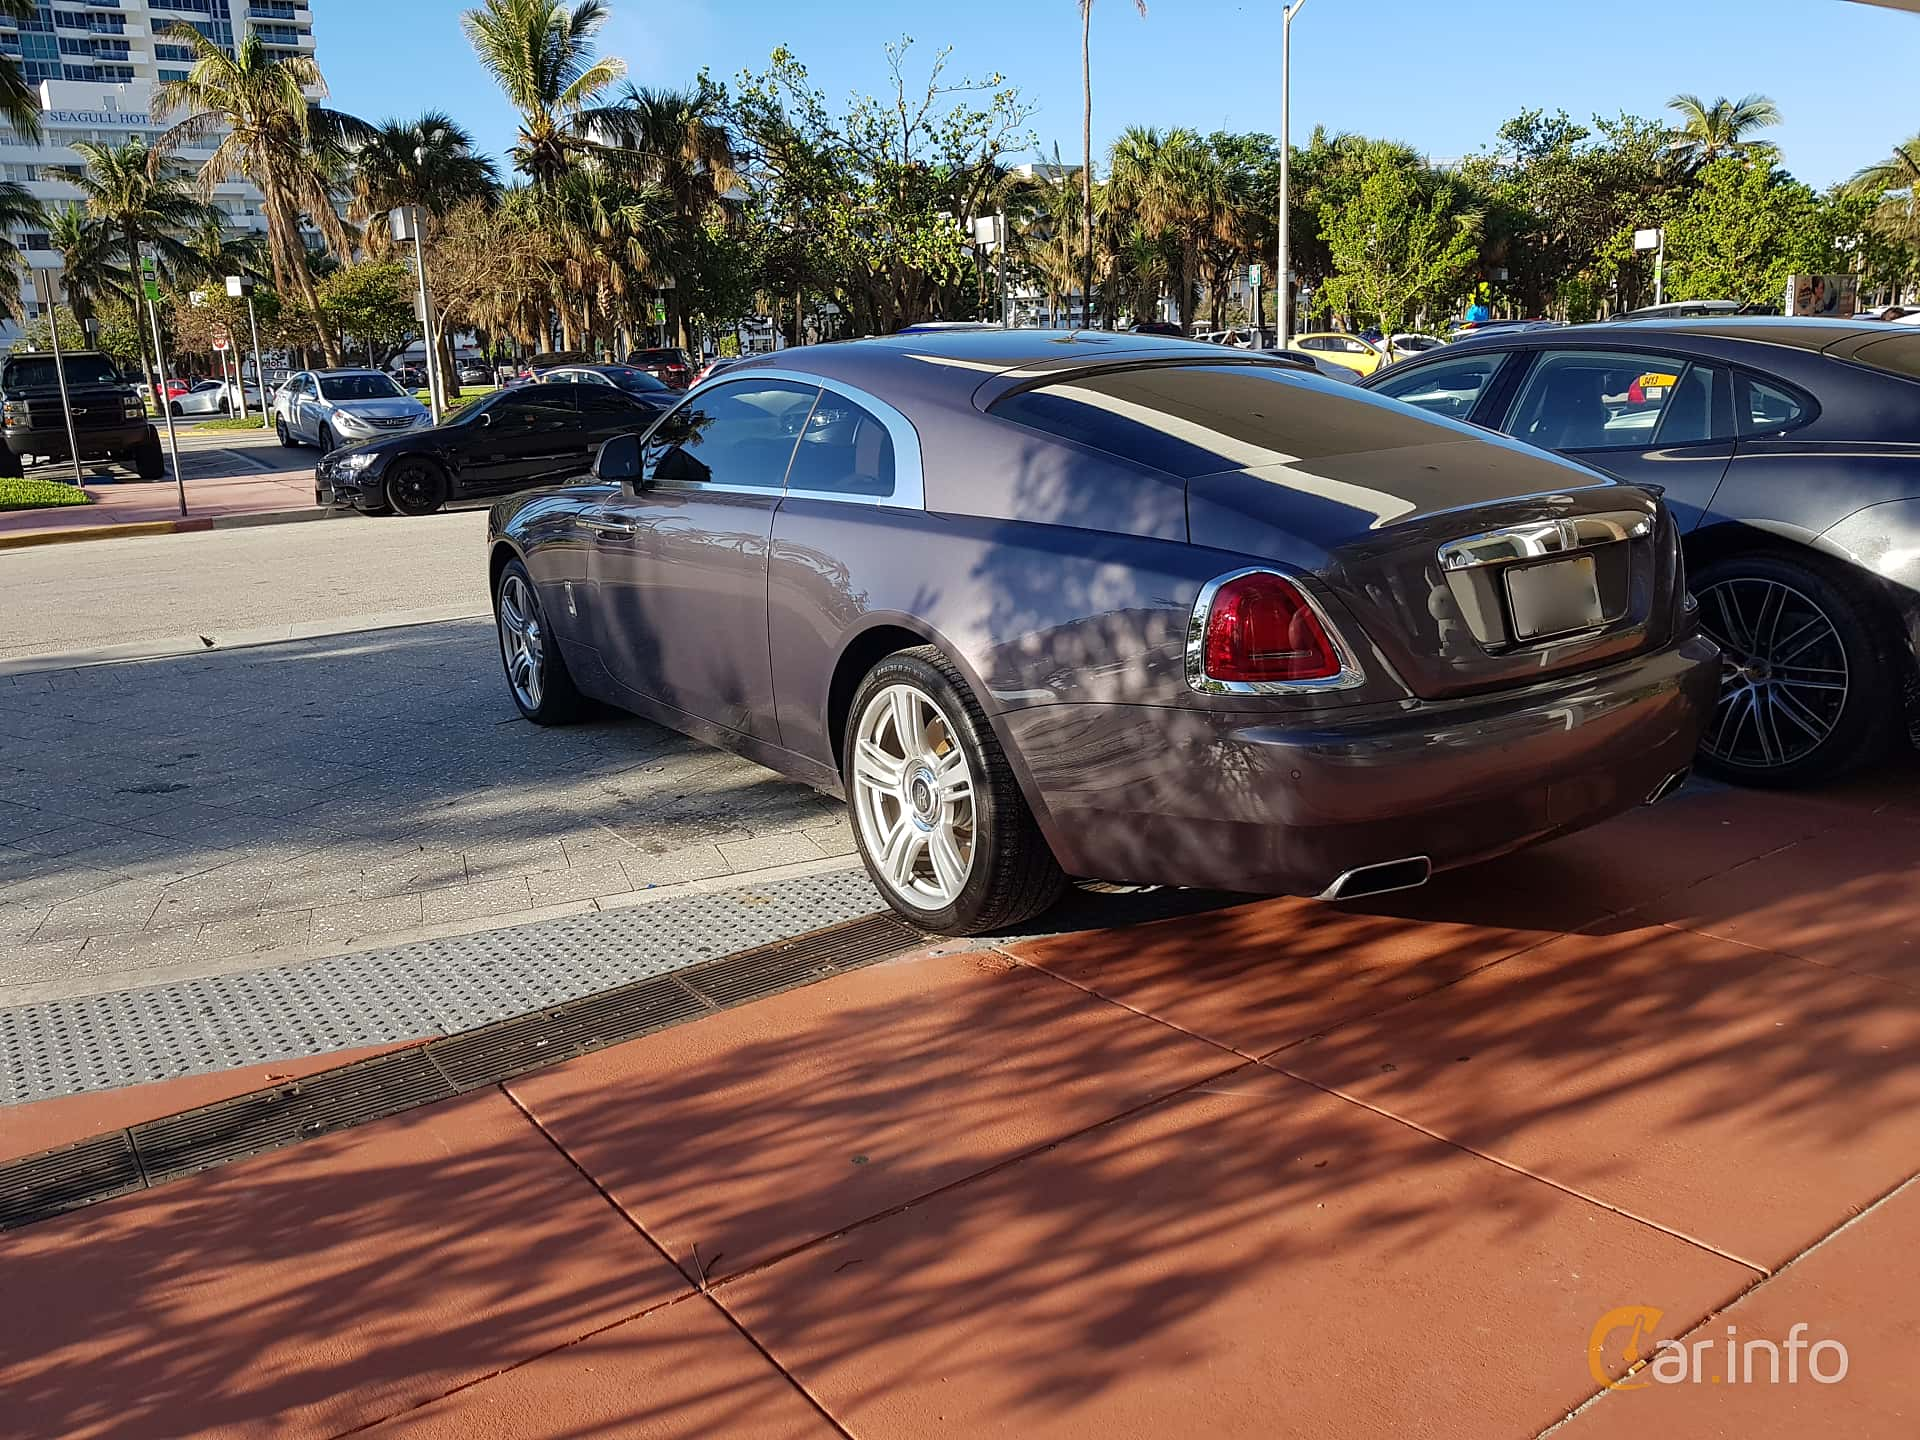 Rolls-Royce Wraith Coupé 6.6 V12 Automatic, 632hp, 2014